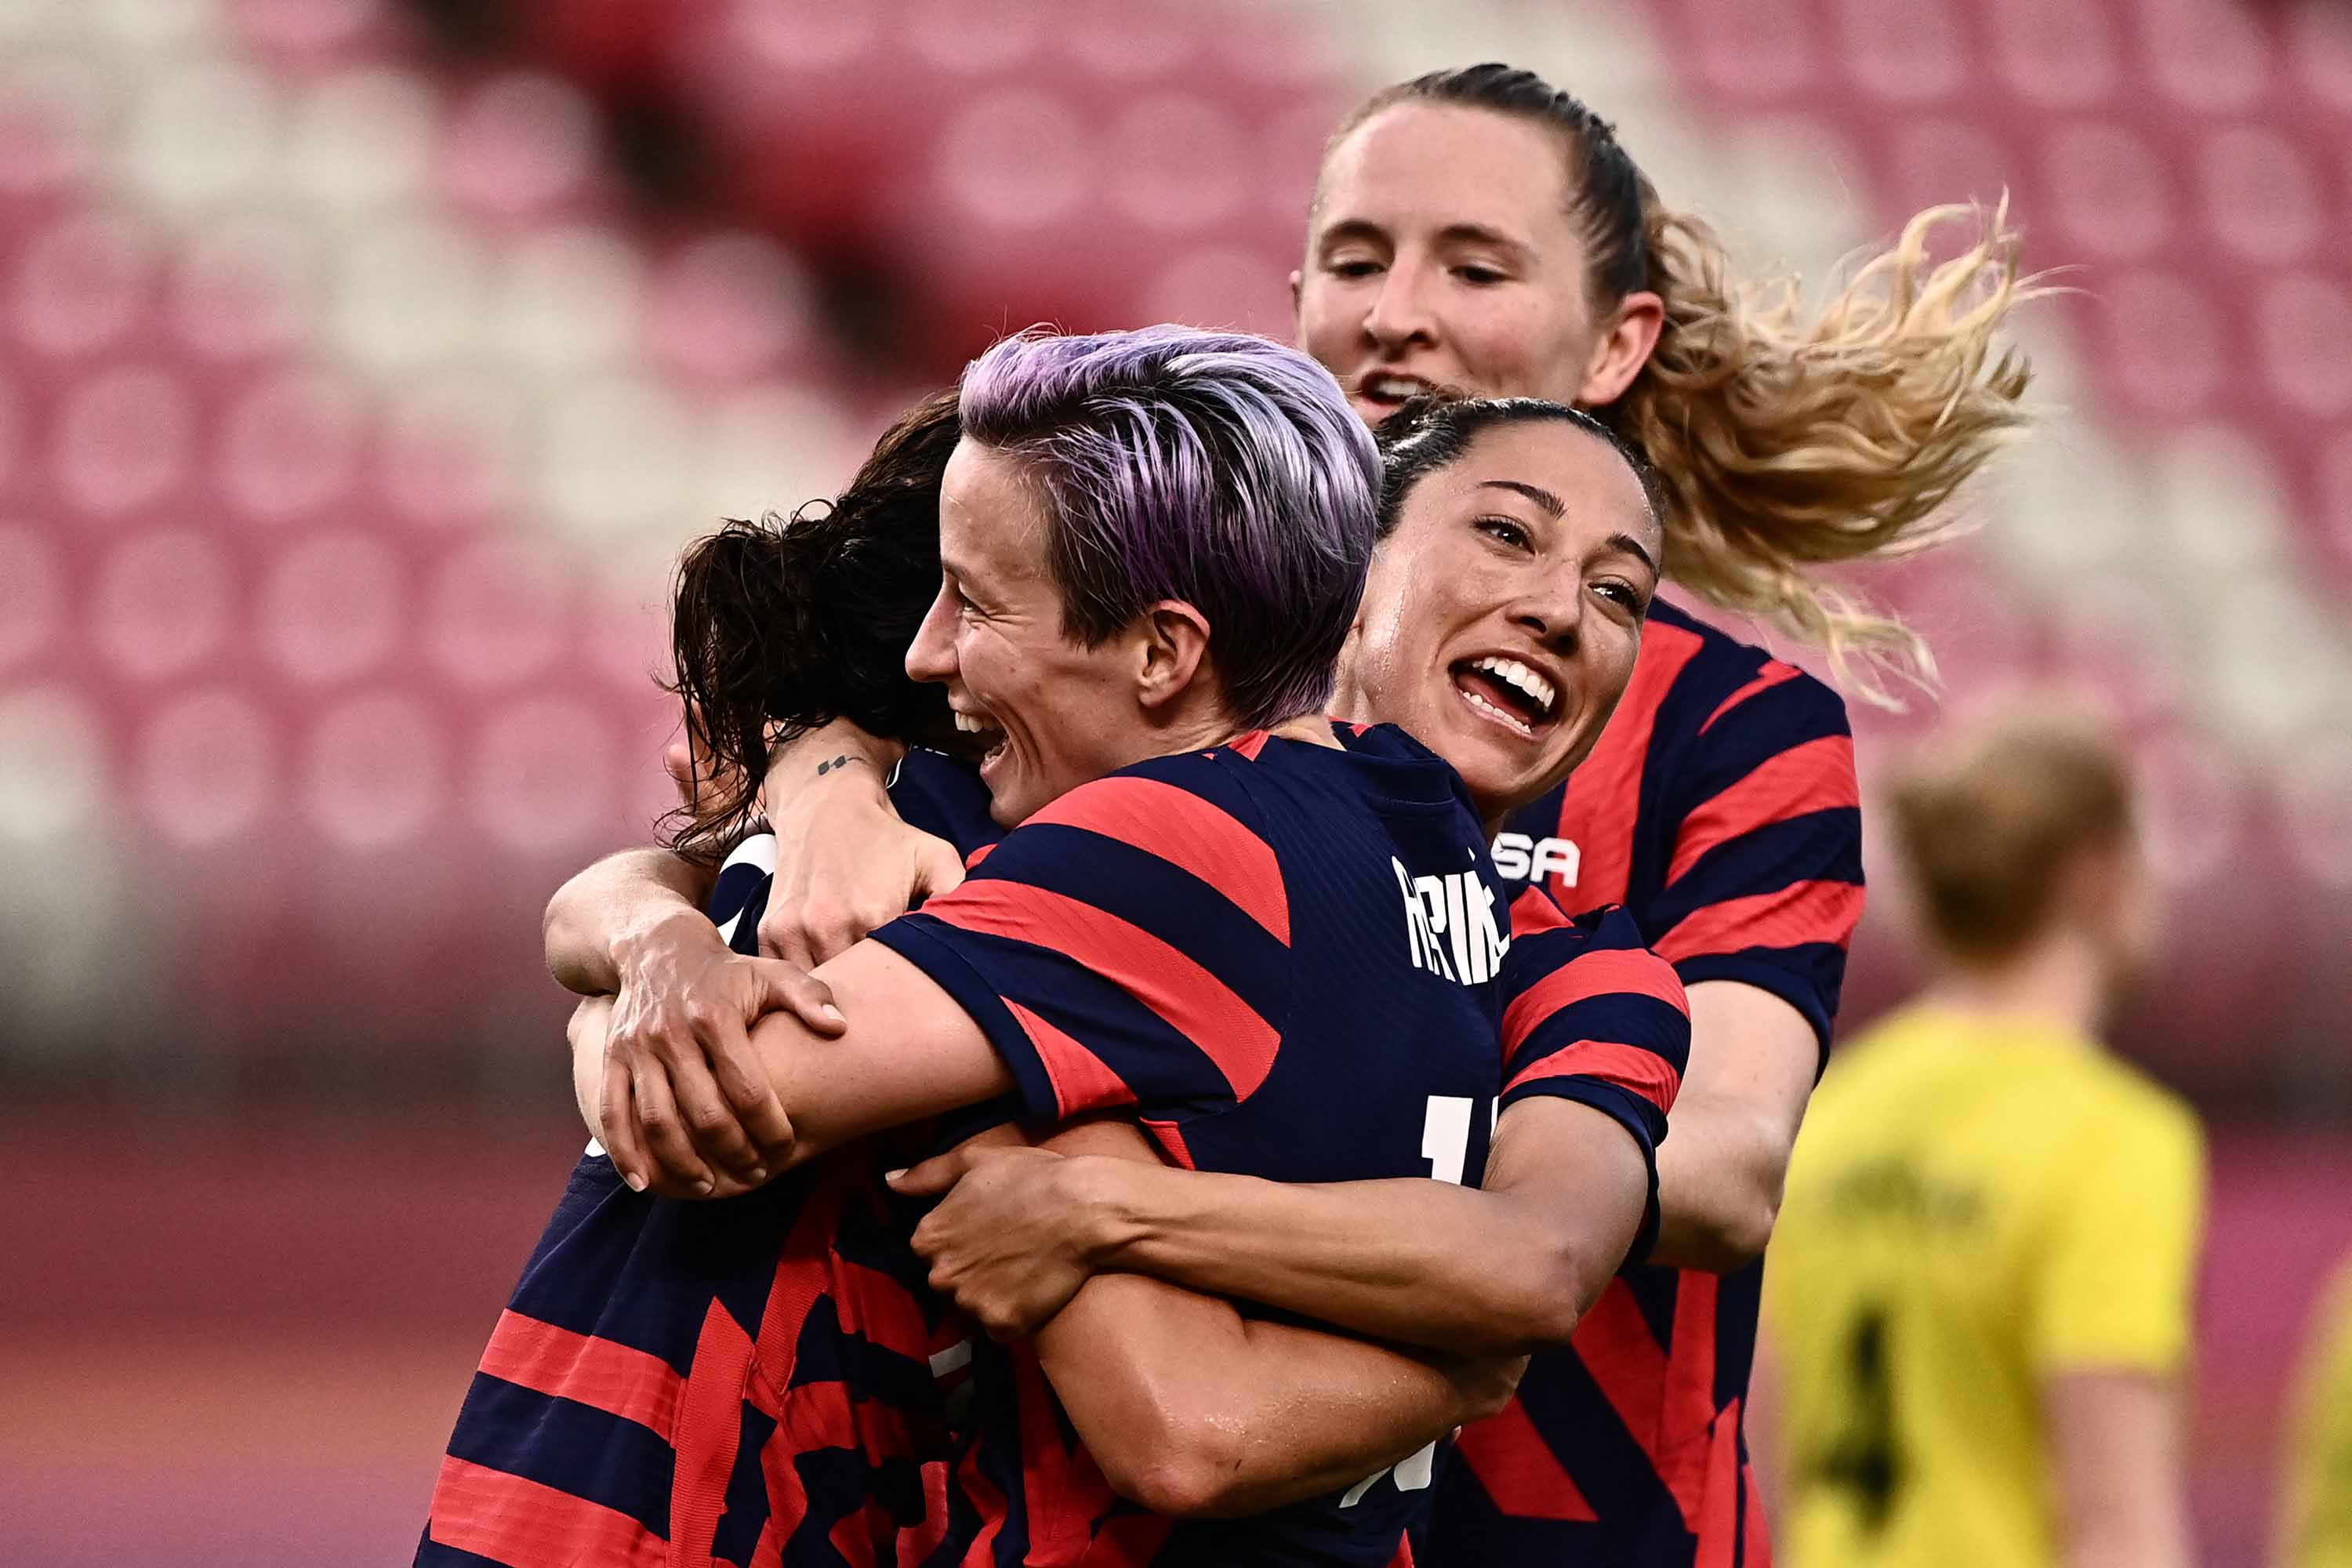 USA's forward Carli Lloyd, left, is congratulated by teammates after scoring during the women's bronze medal football match between Australia and the United States on August 5.